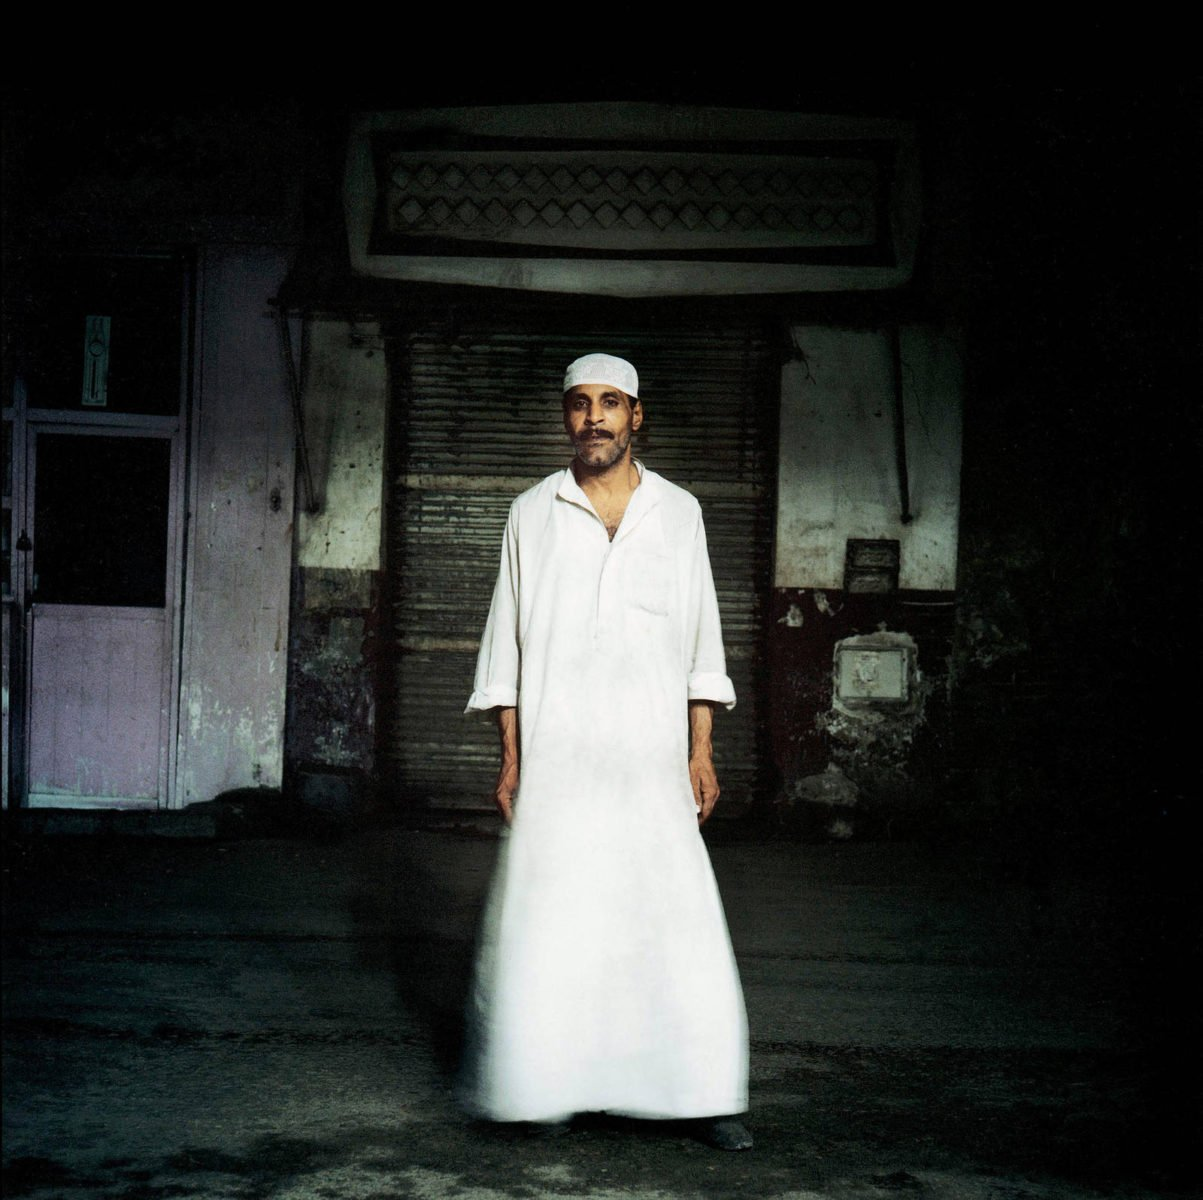 Egypt, Cairo, 2001 - Ahmed, waiter photograph by Denis Dailleux